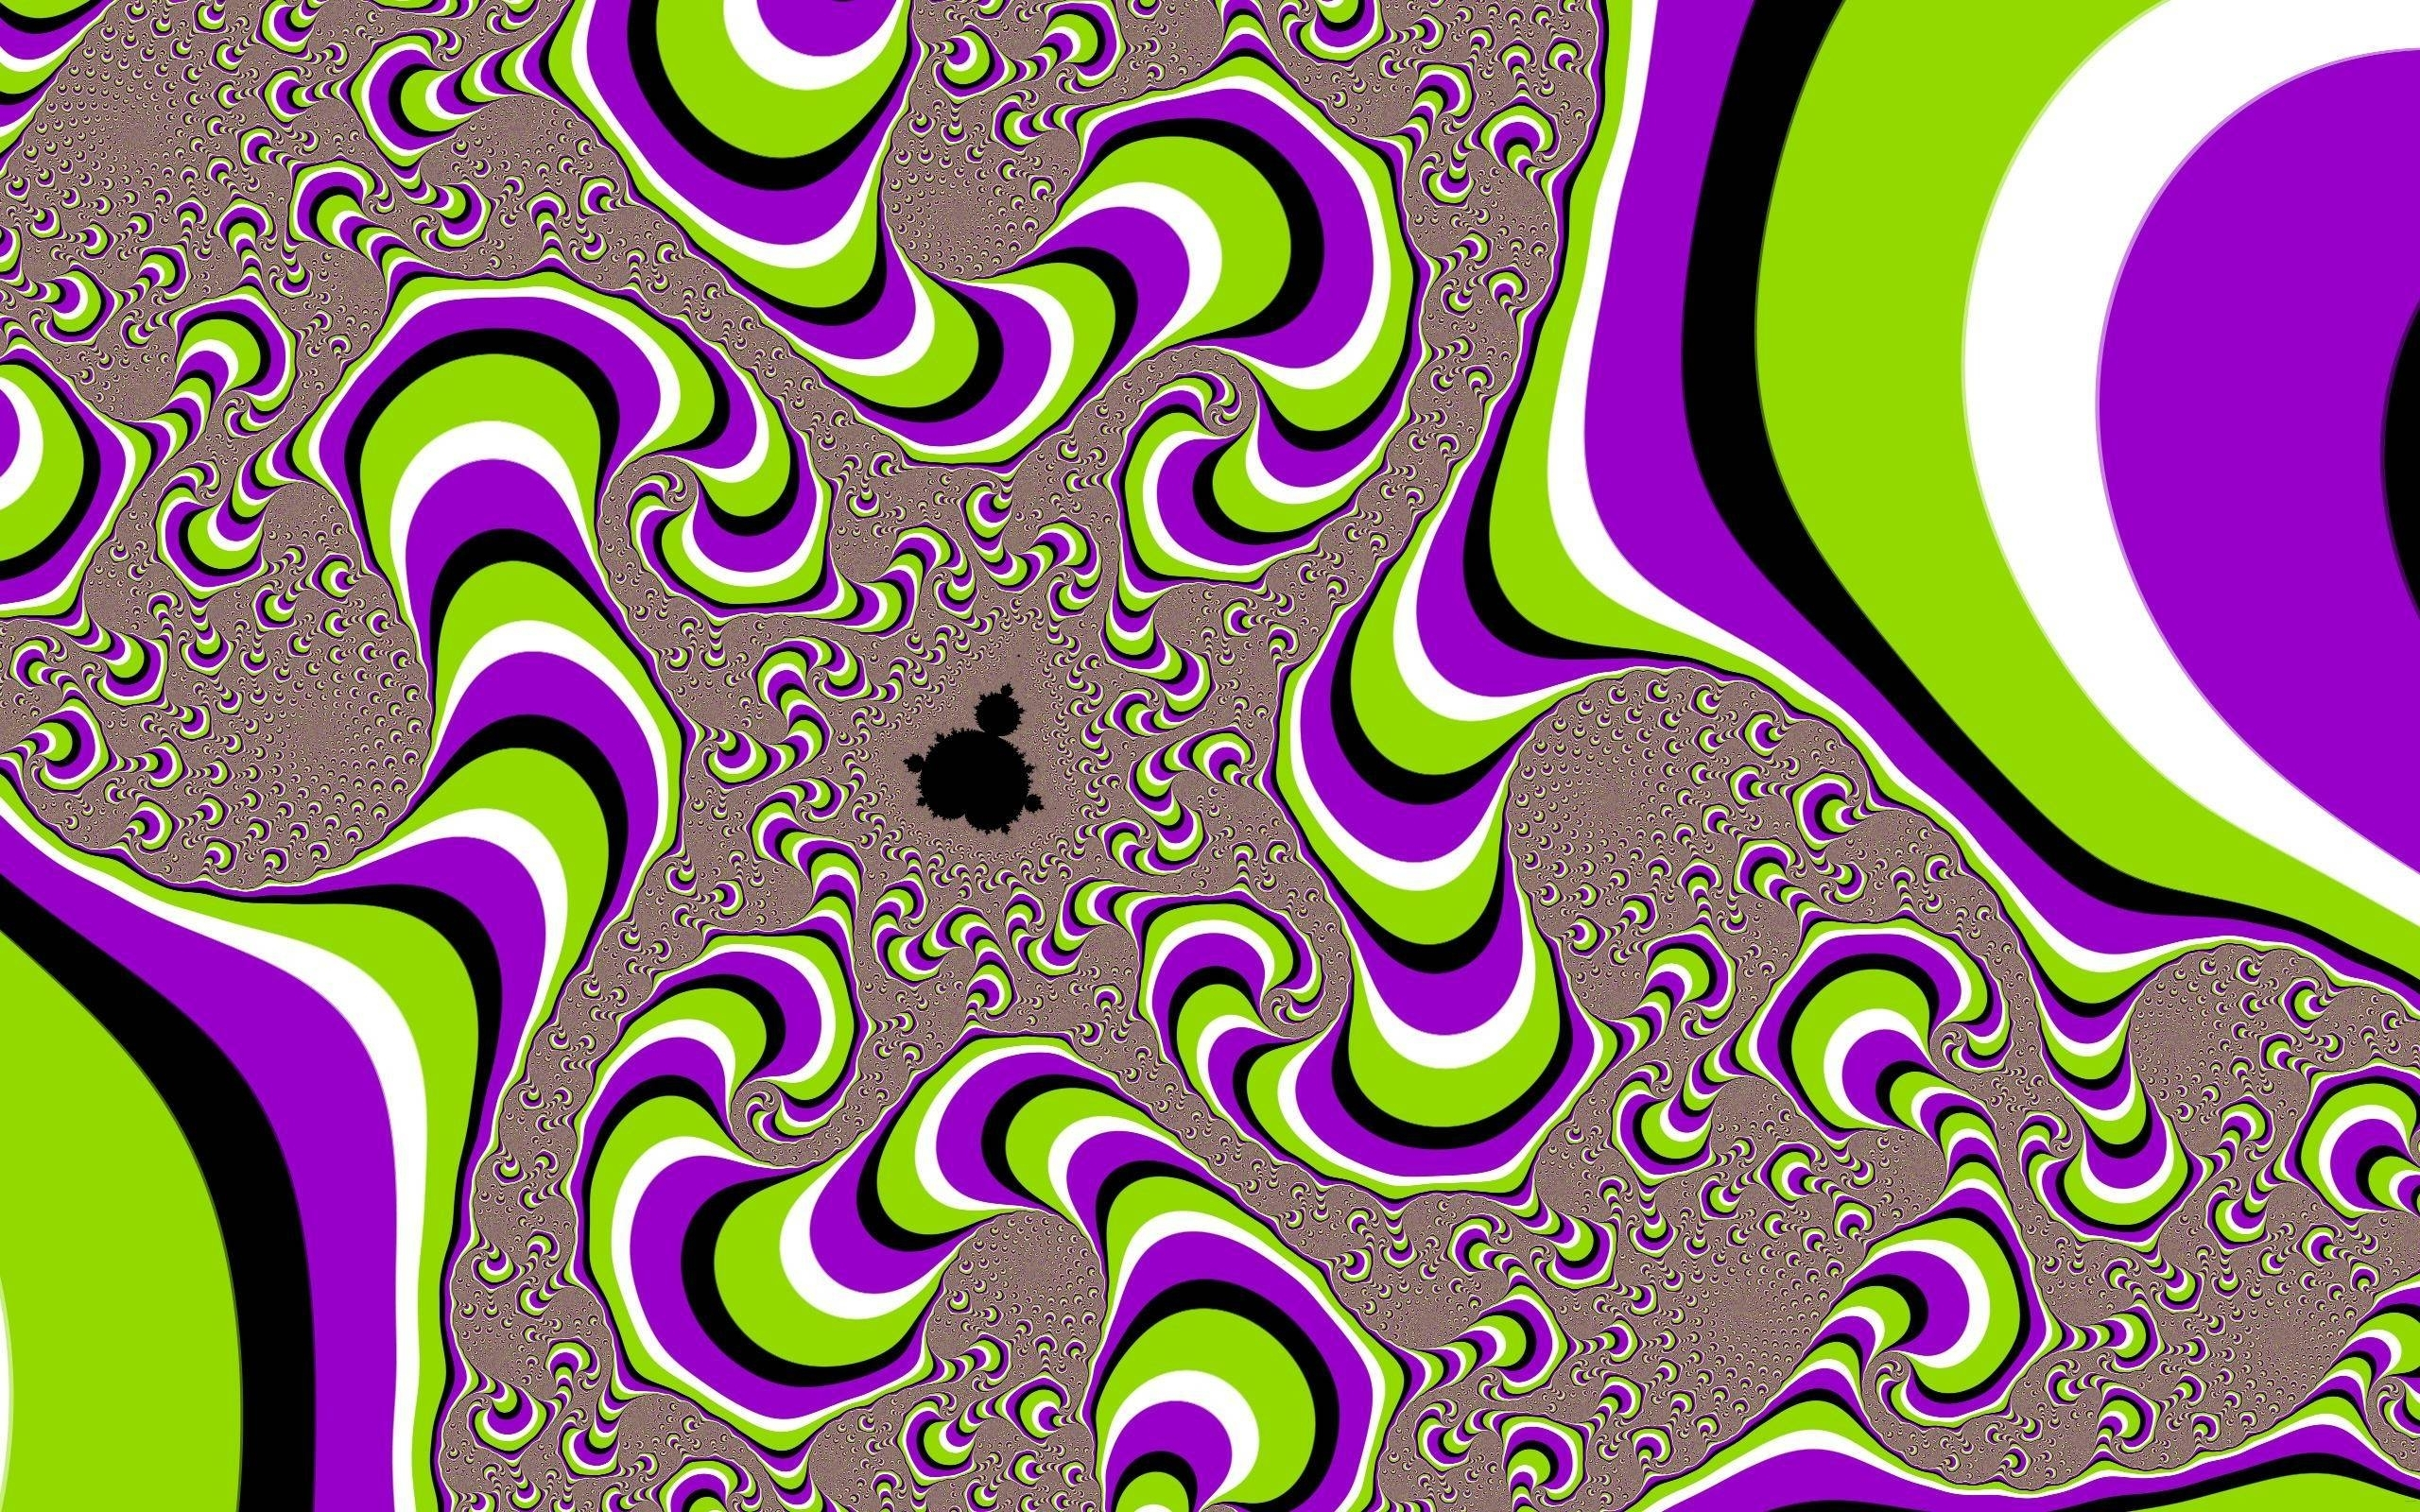 optical illusion wallpapers - wallpaper cave